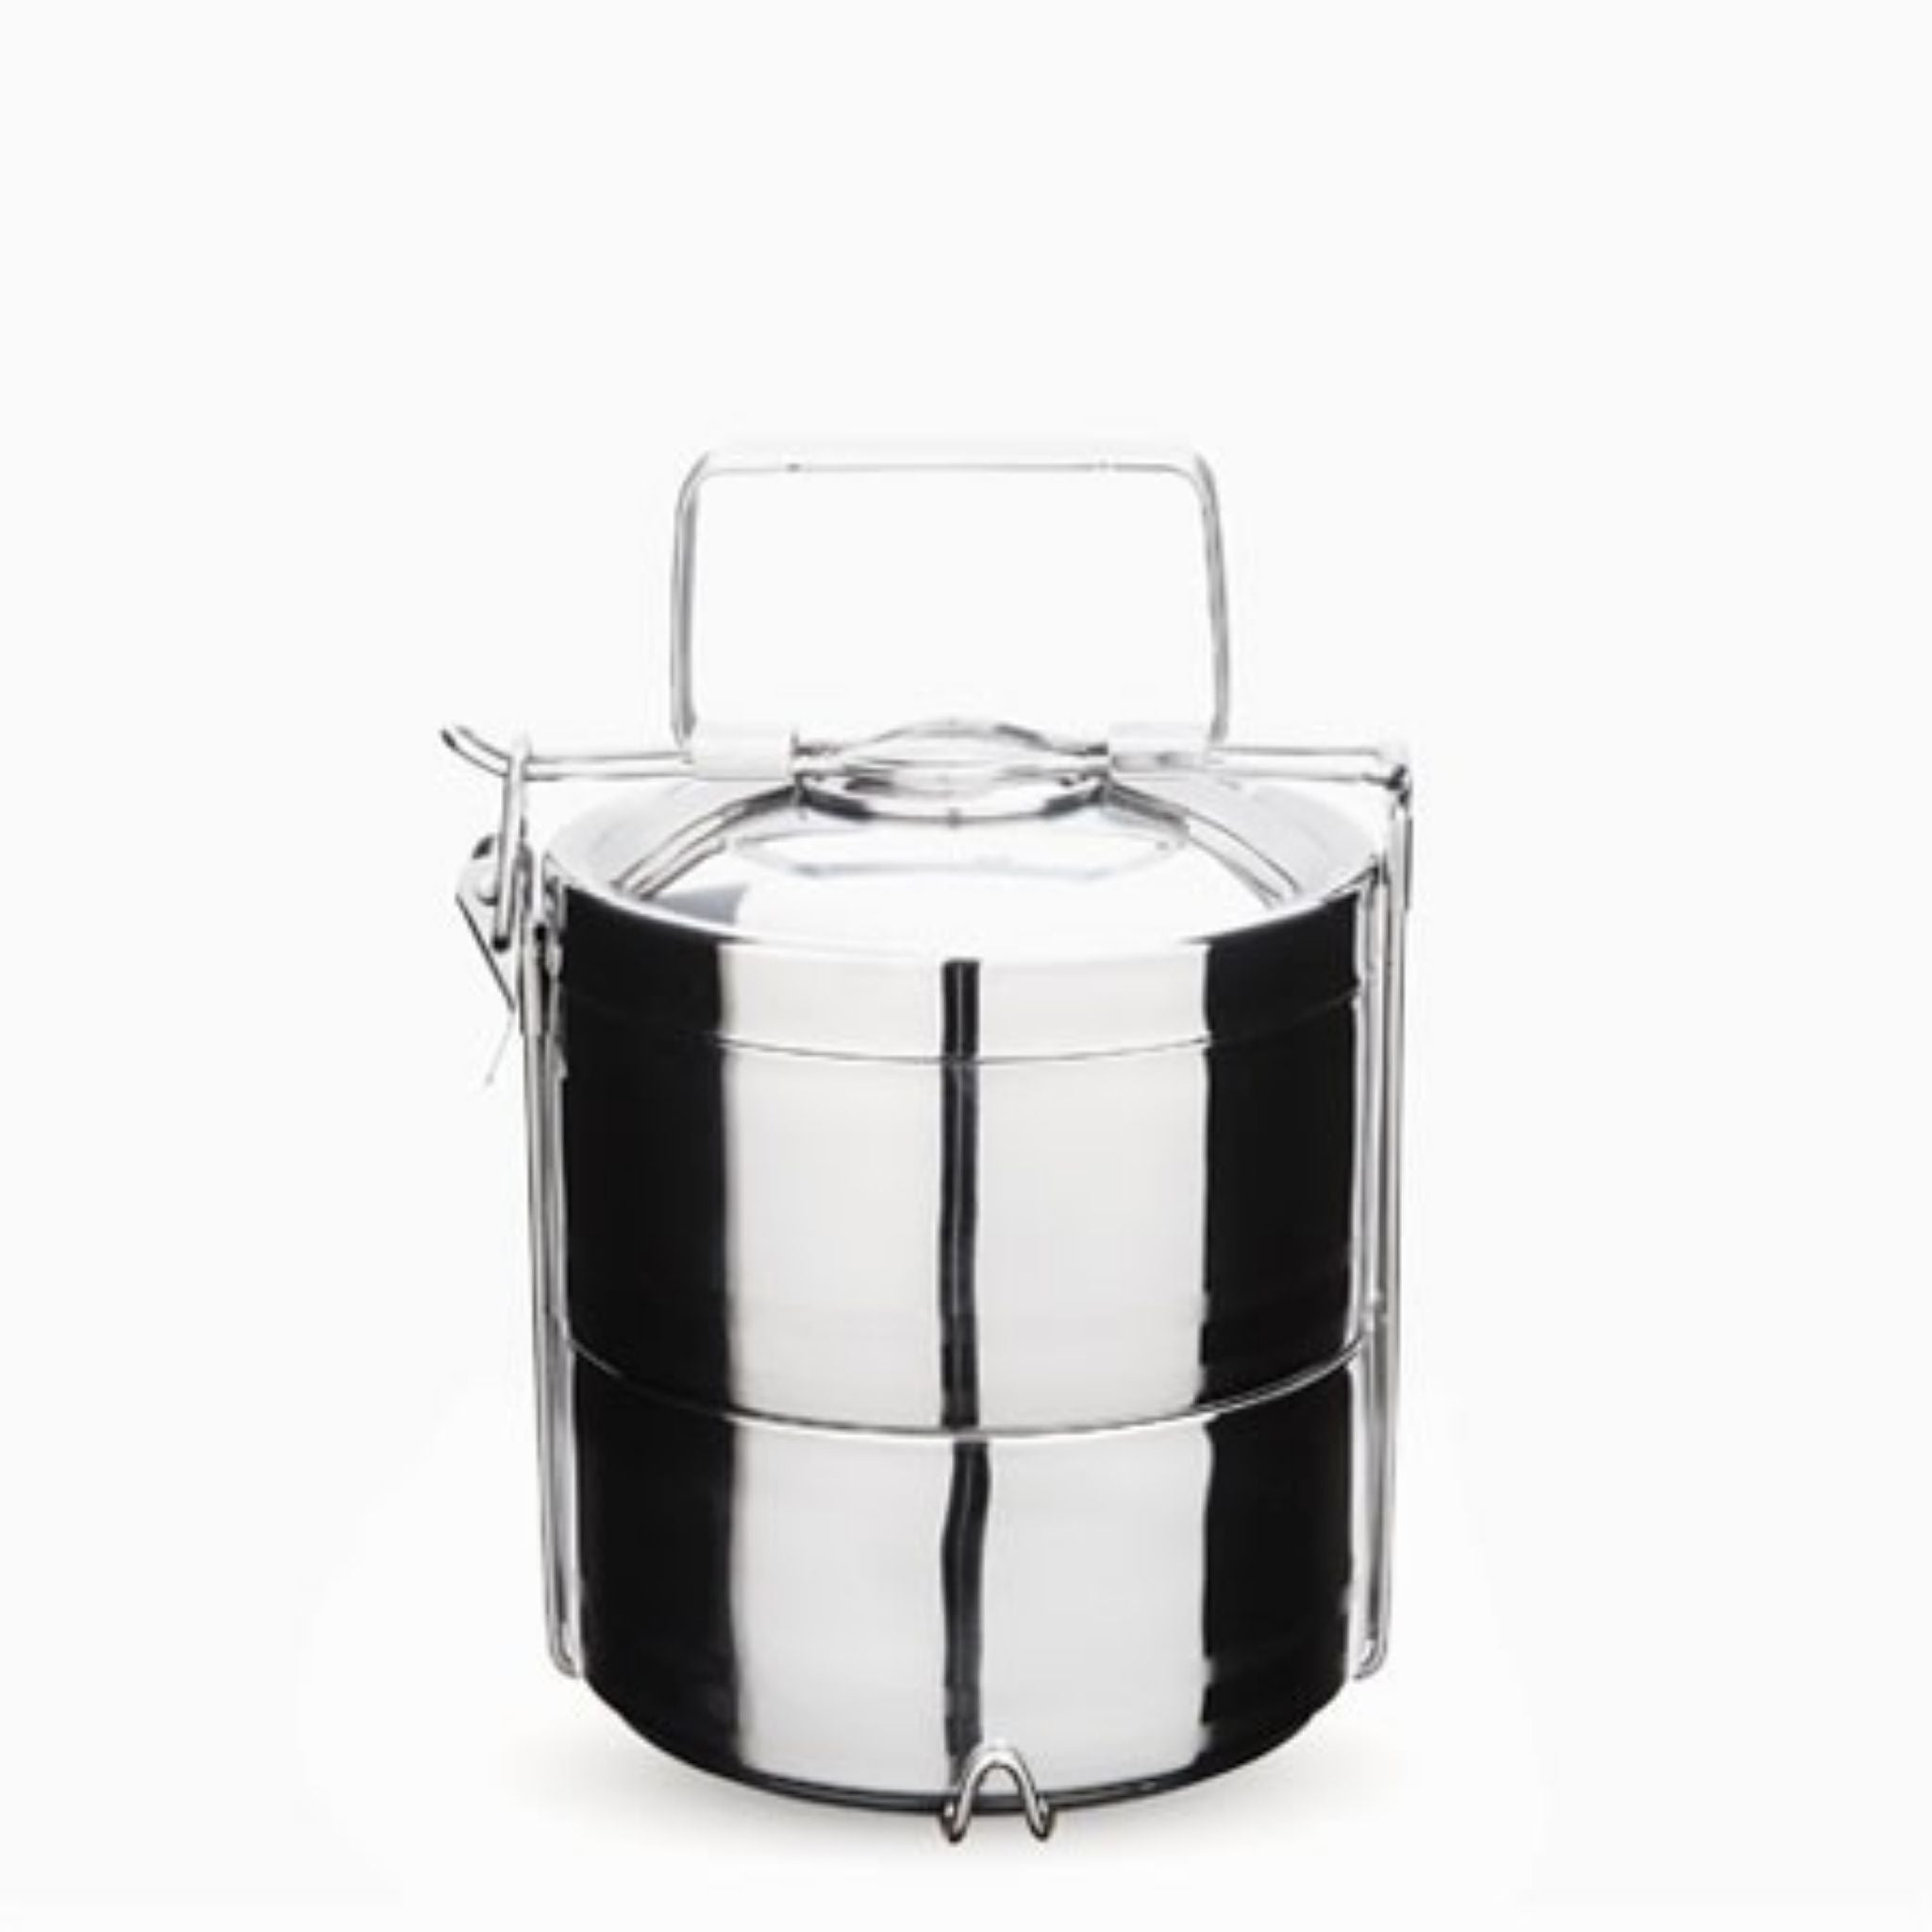 onyx tiffin container 2 round containers and one lid stacked together with handle and latch around it